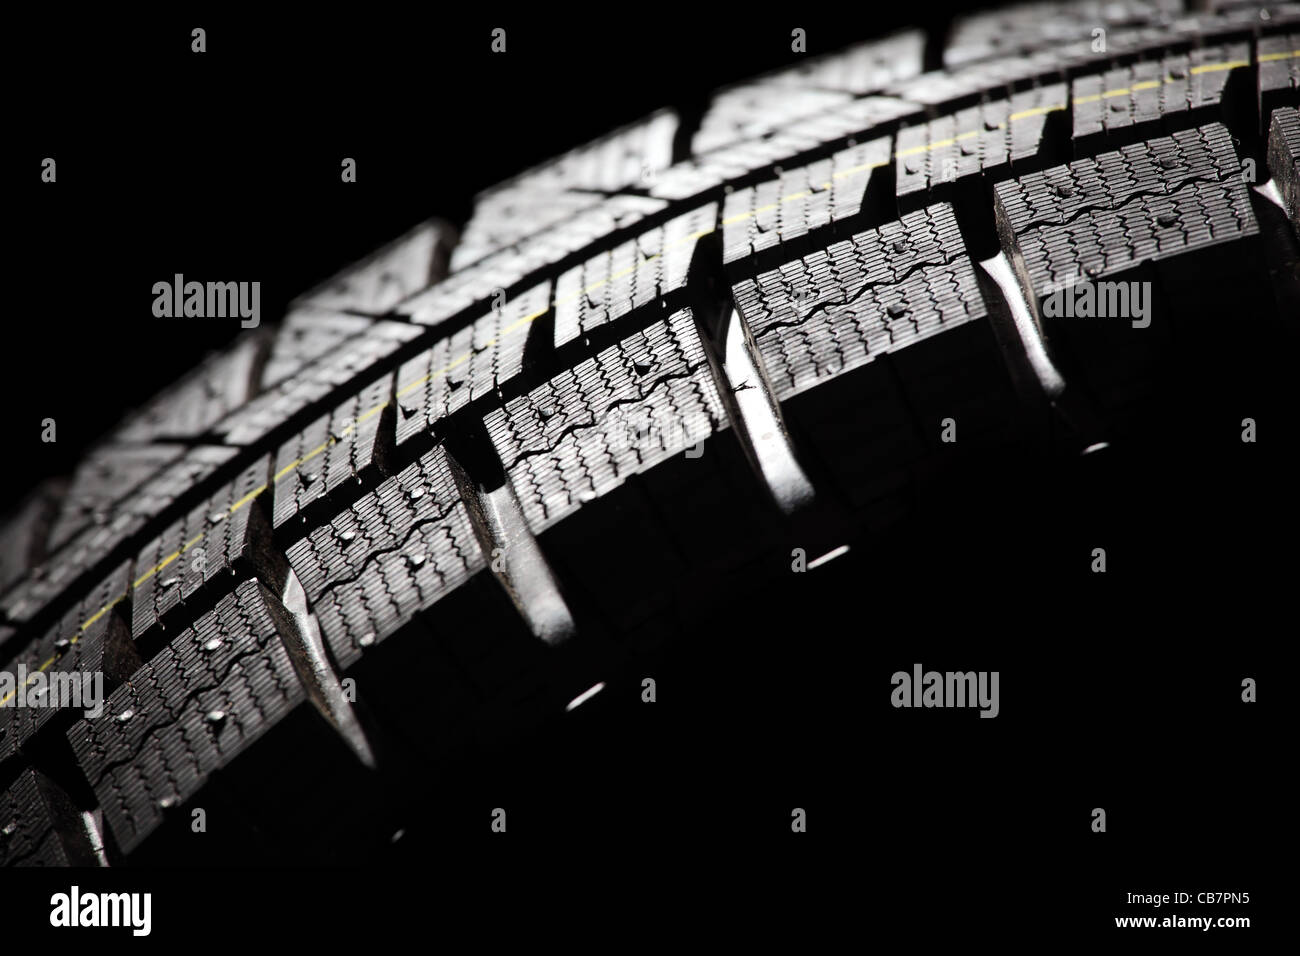 Part of brand new car tyre close-up. Horizontal composition. - Stock Image